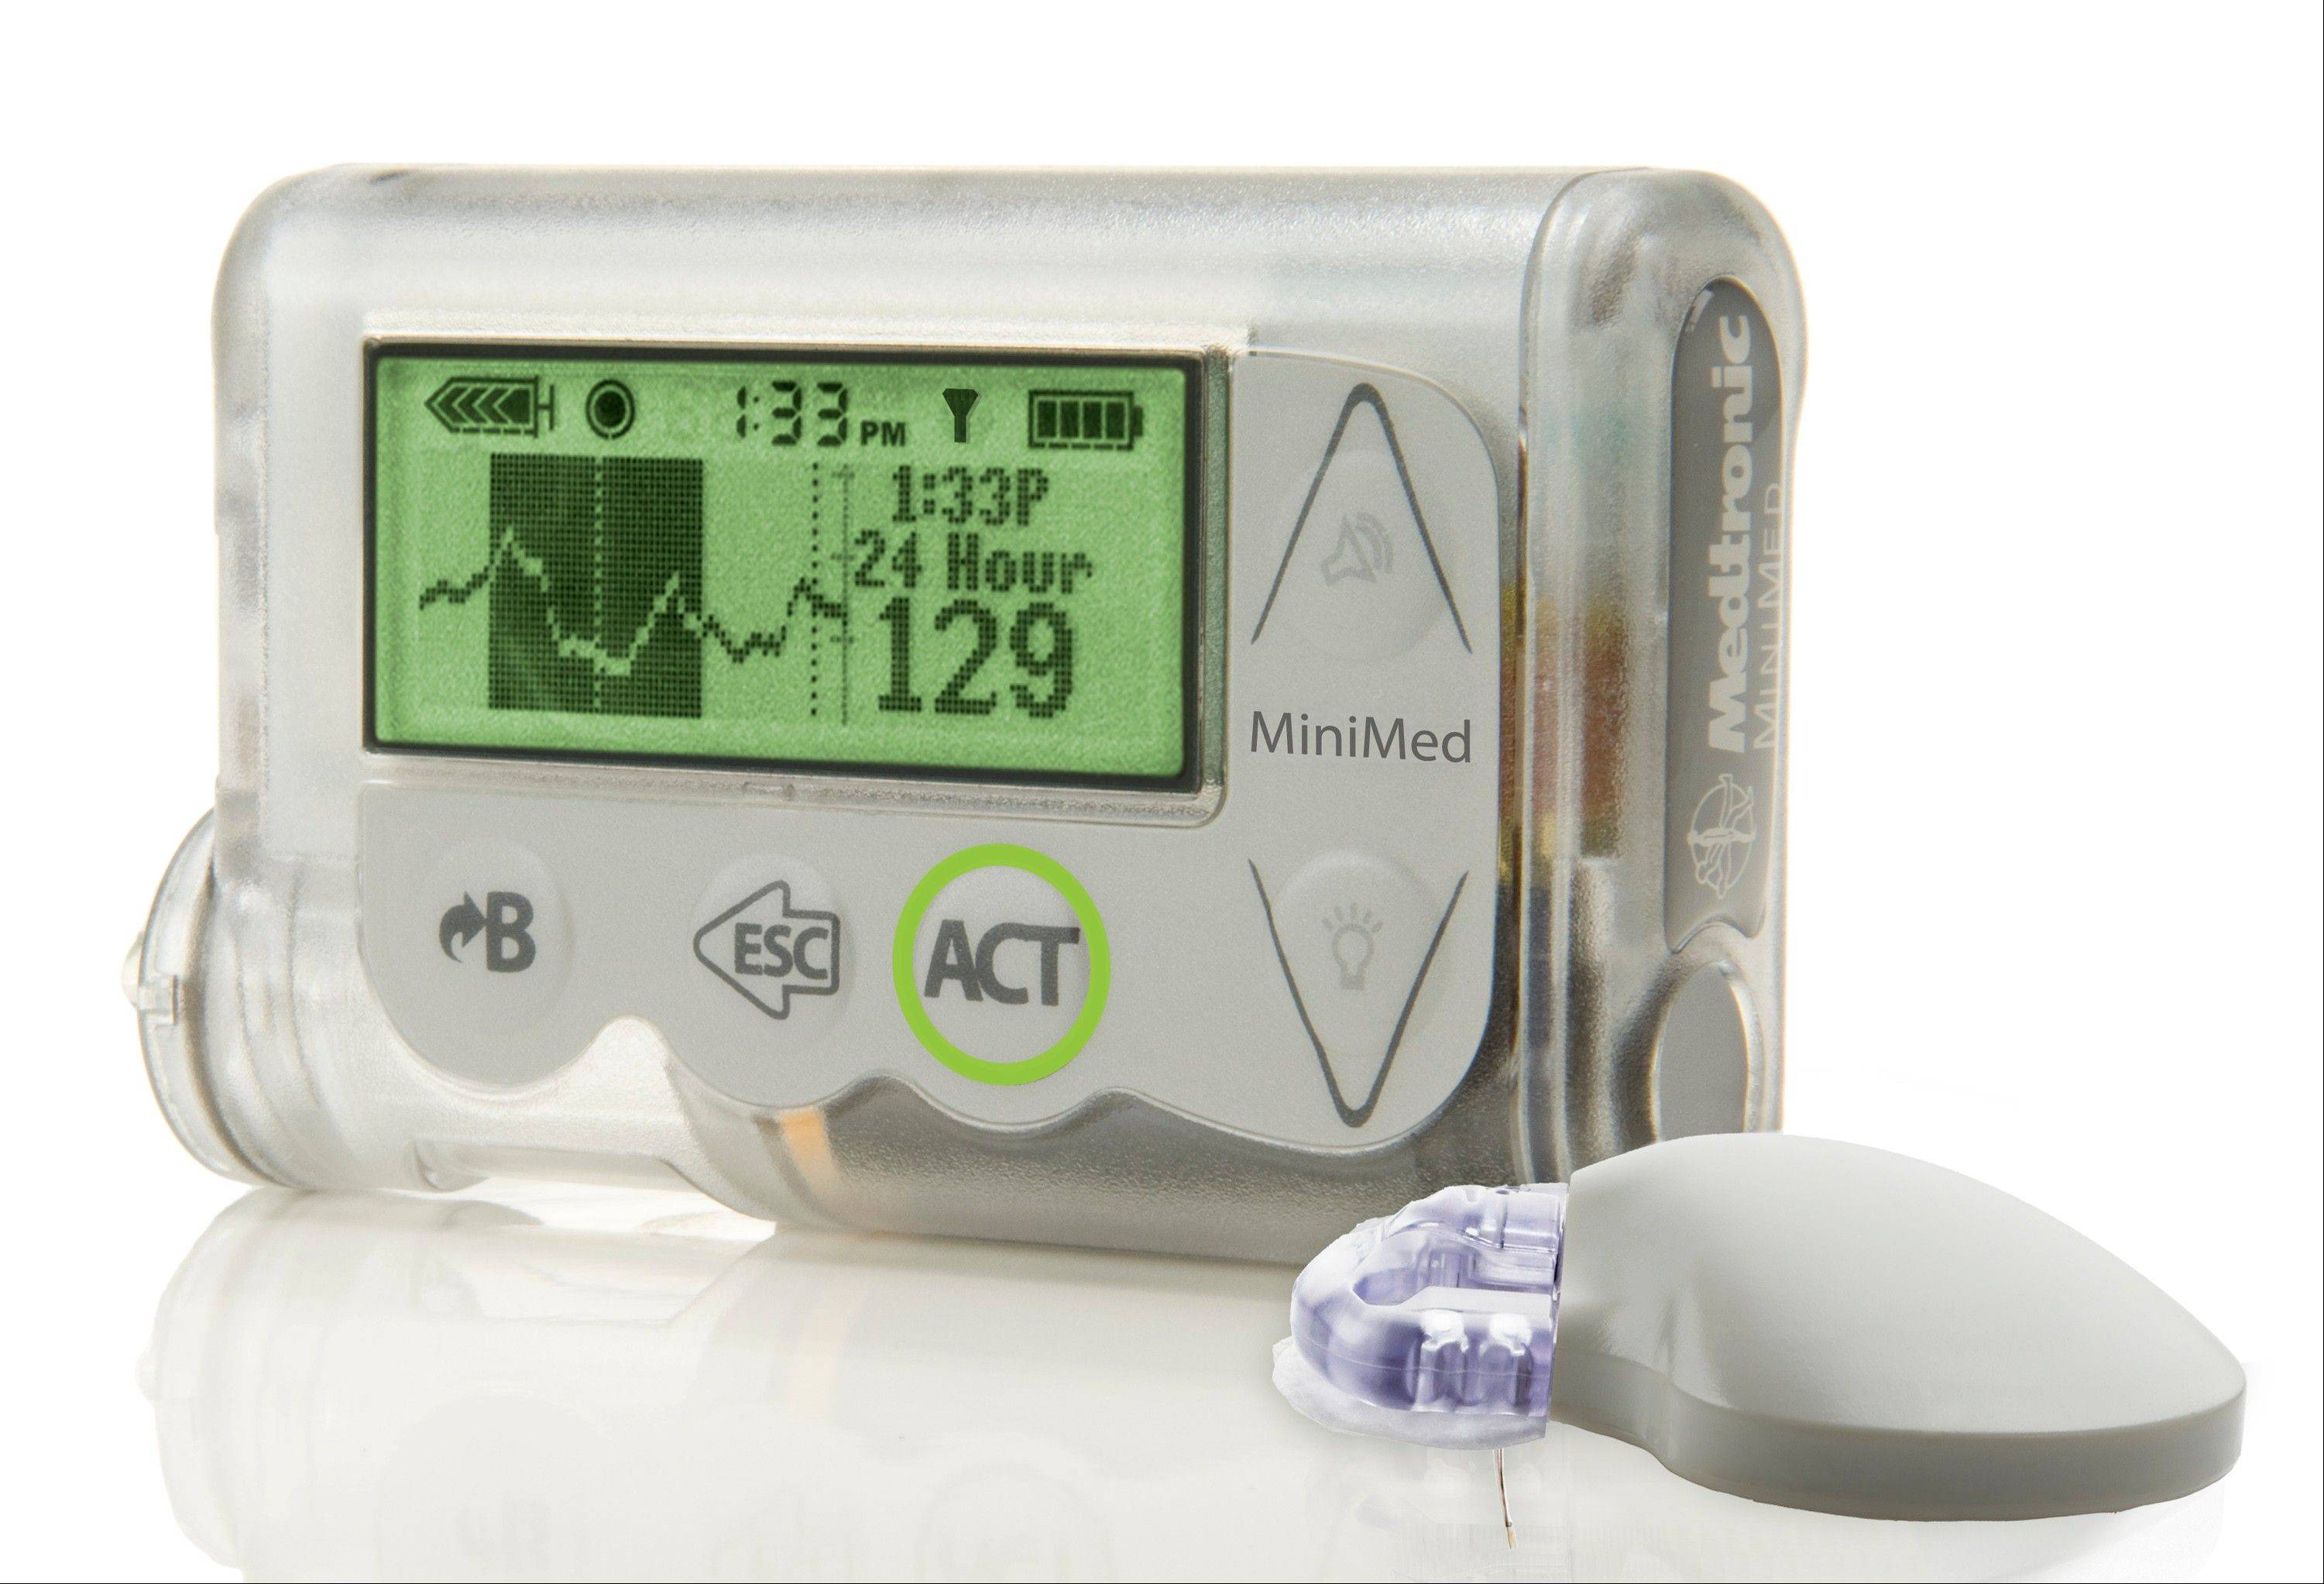 Updated at the American Diabetes Association conference in Chicago was the MiniMed Integrated System device, which doctors are reporting as a major step toward an �artificial pancreas.� The device constantly monitors blood sugar and automatically supplies insulin as needed.